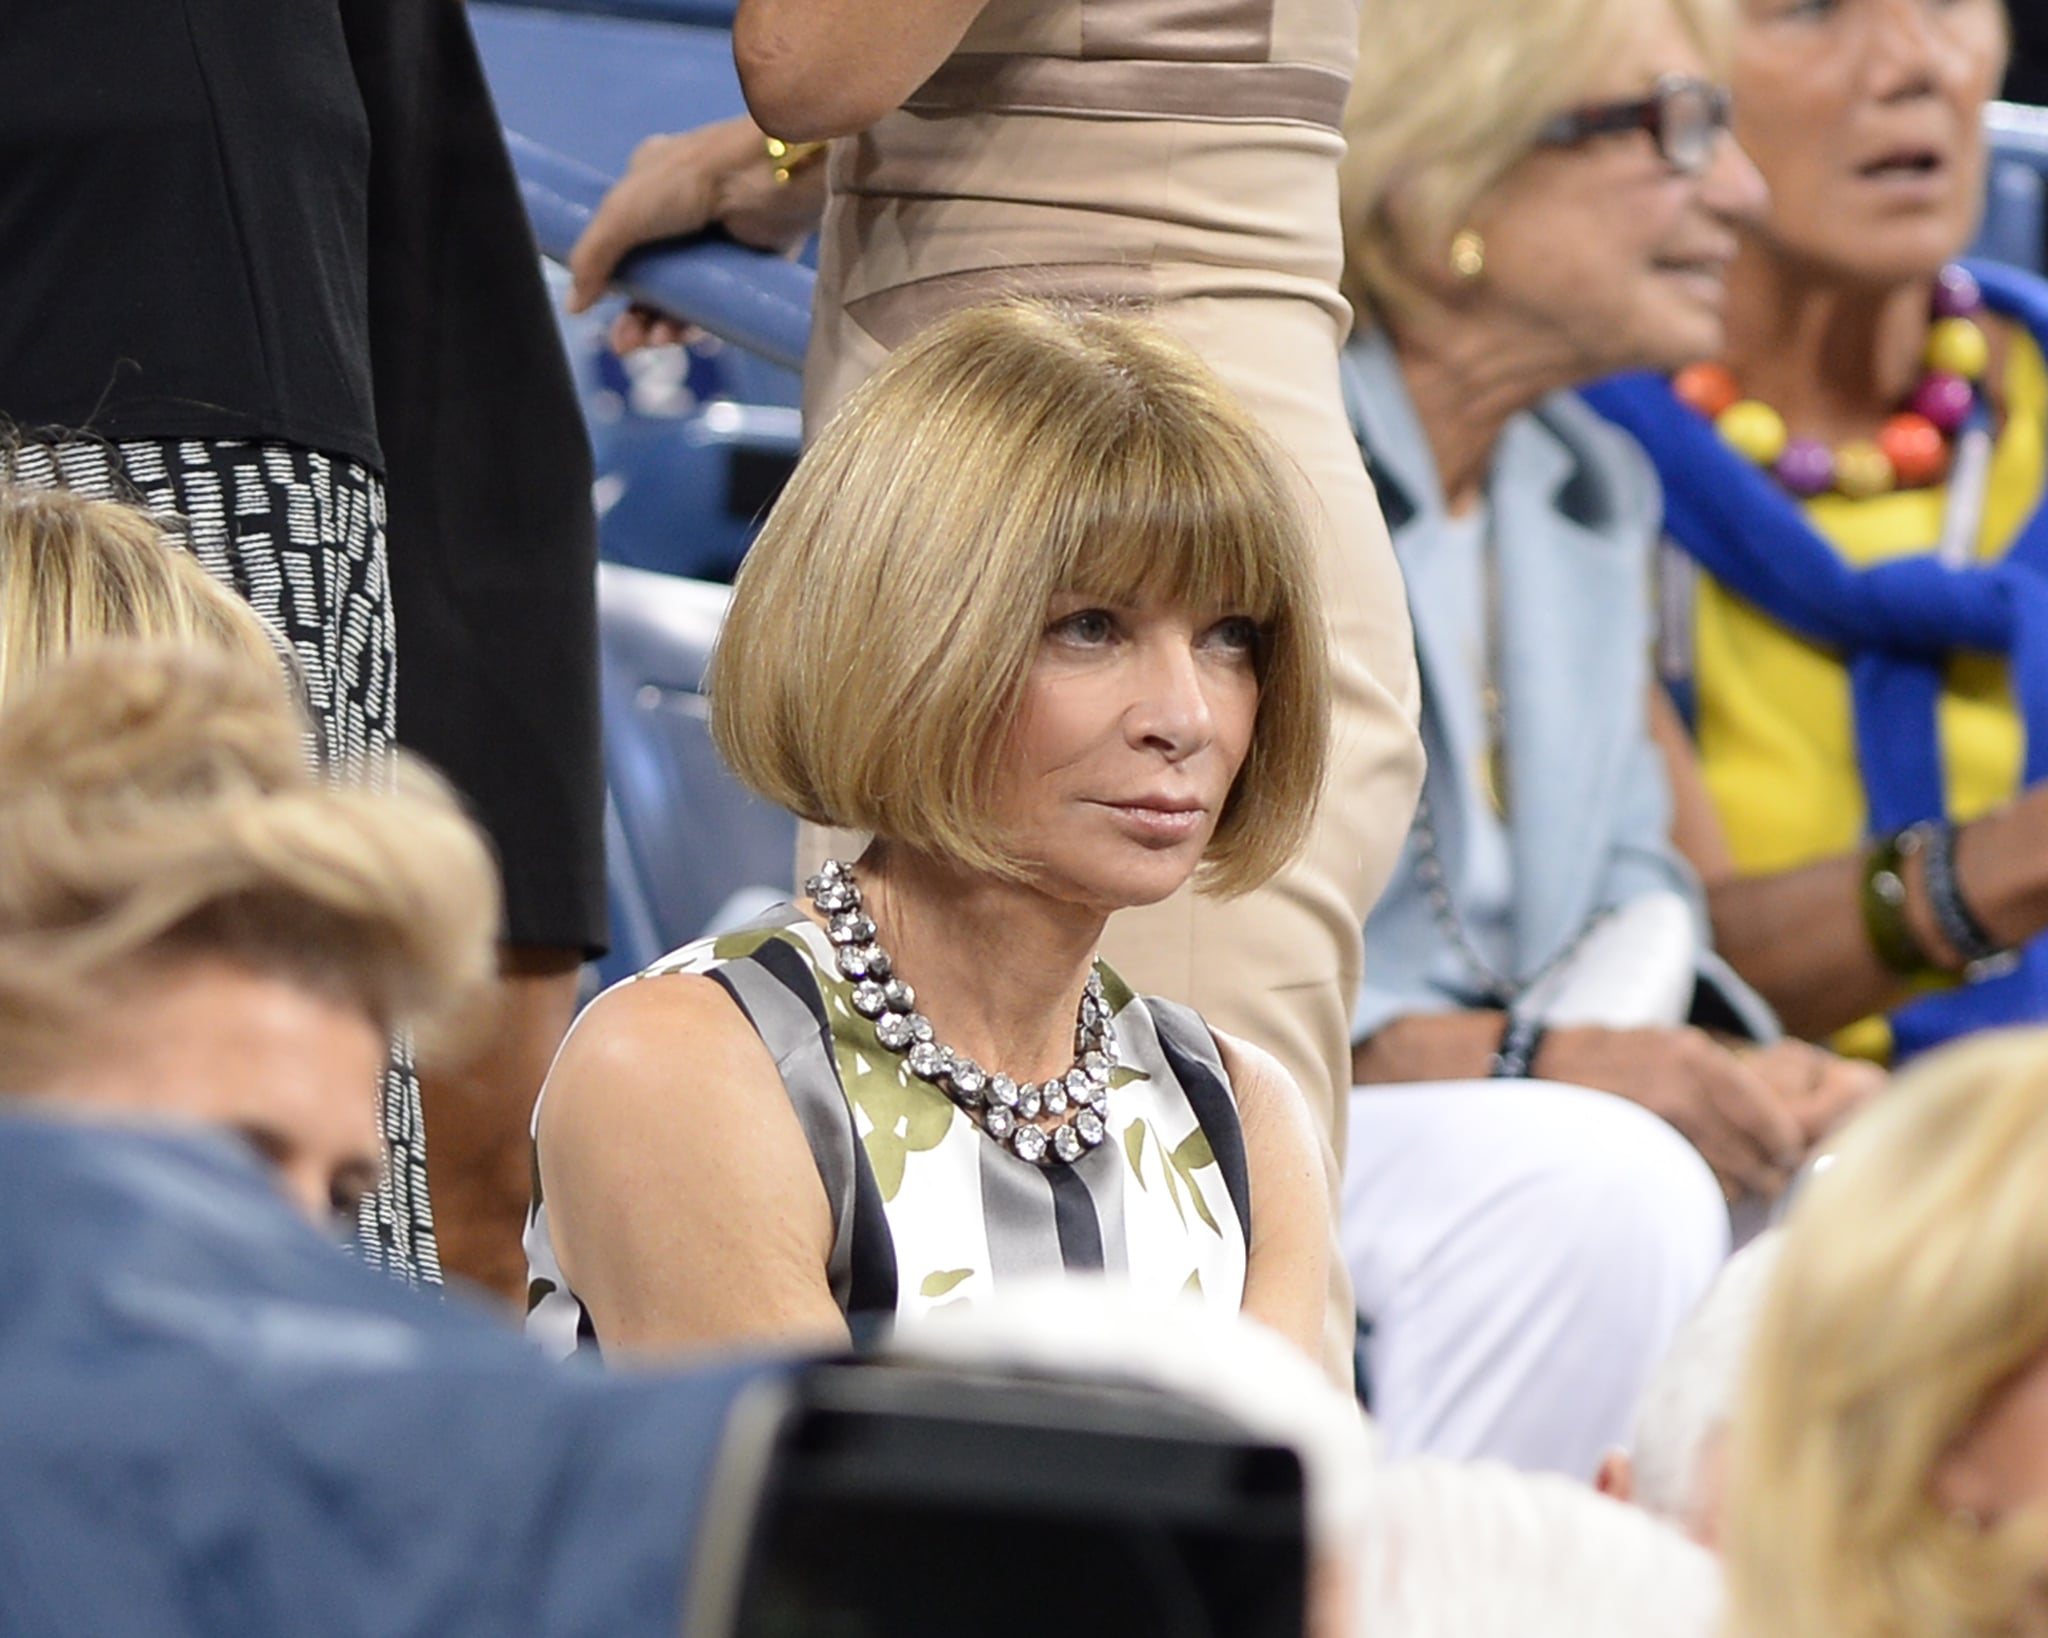 Anna Wintour was on hand for a match during day one of the festivities.